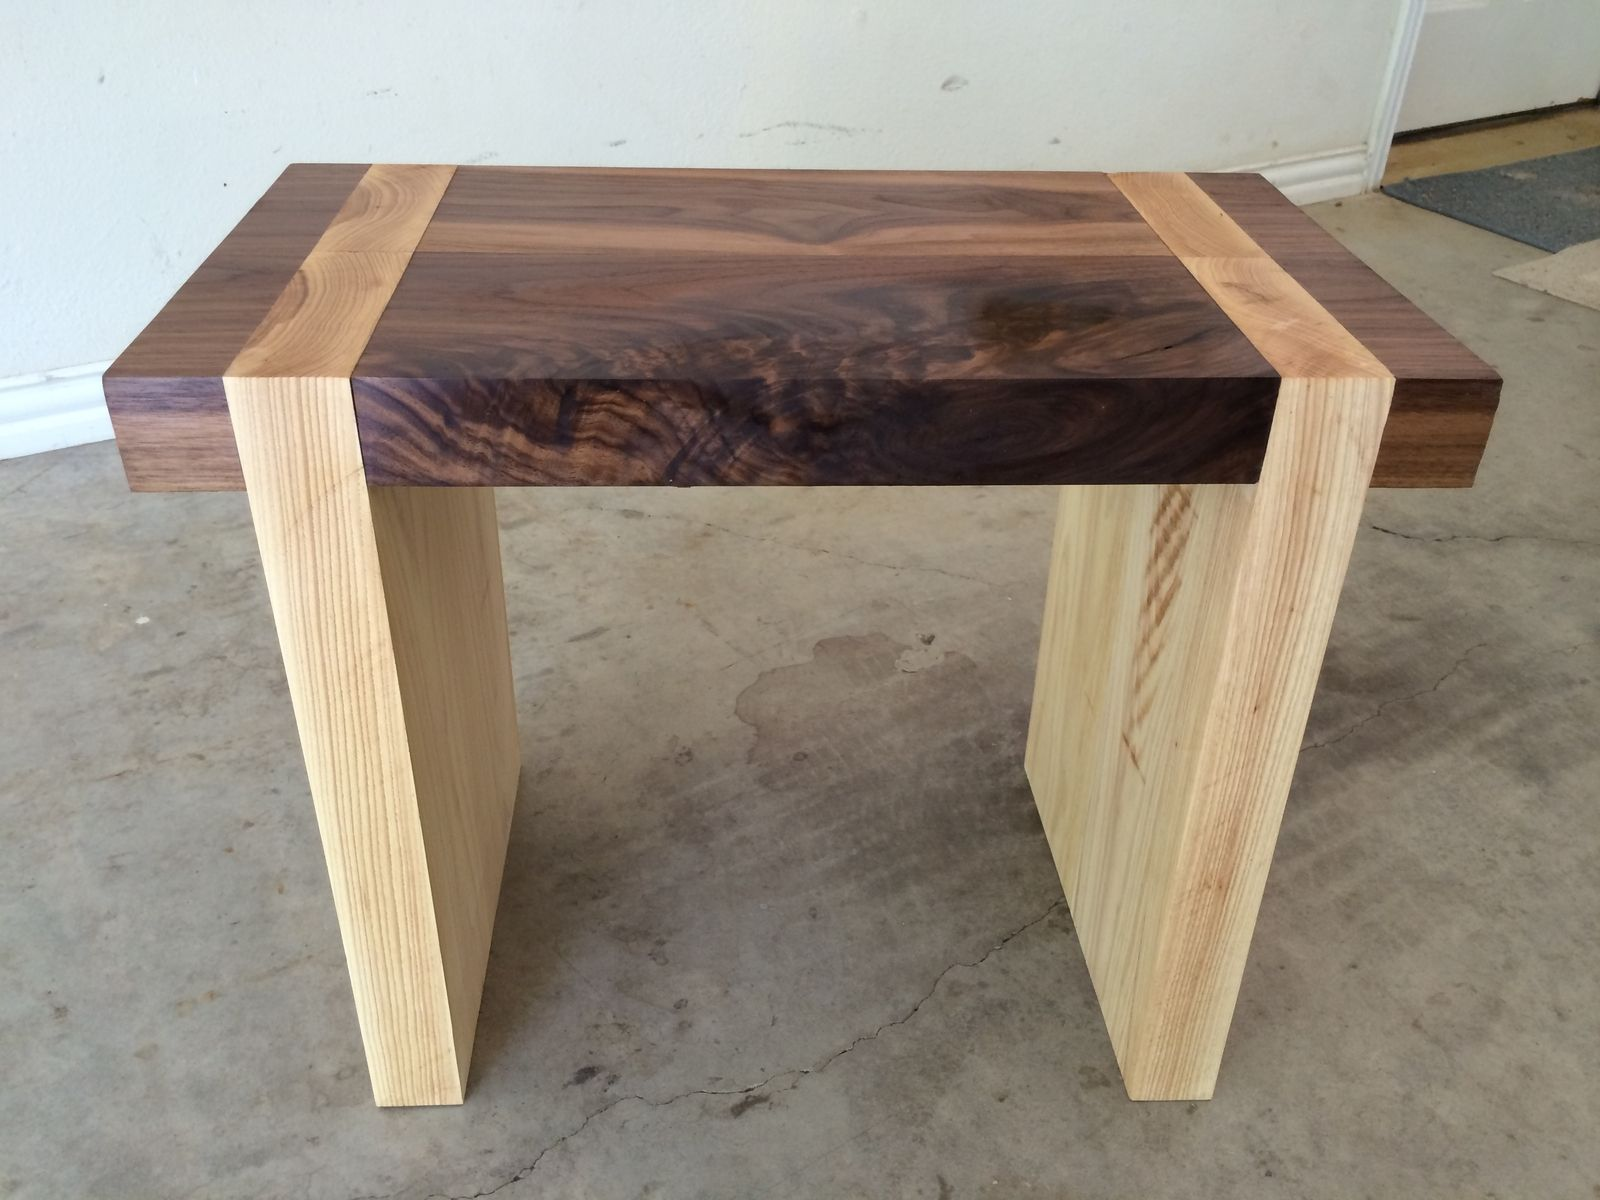 handmade pecan  walnut bench by texas tables  custommadecom - custom made pecan  walnut bench